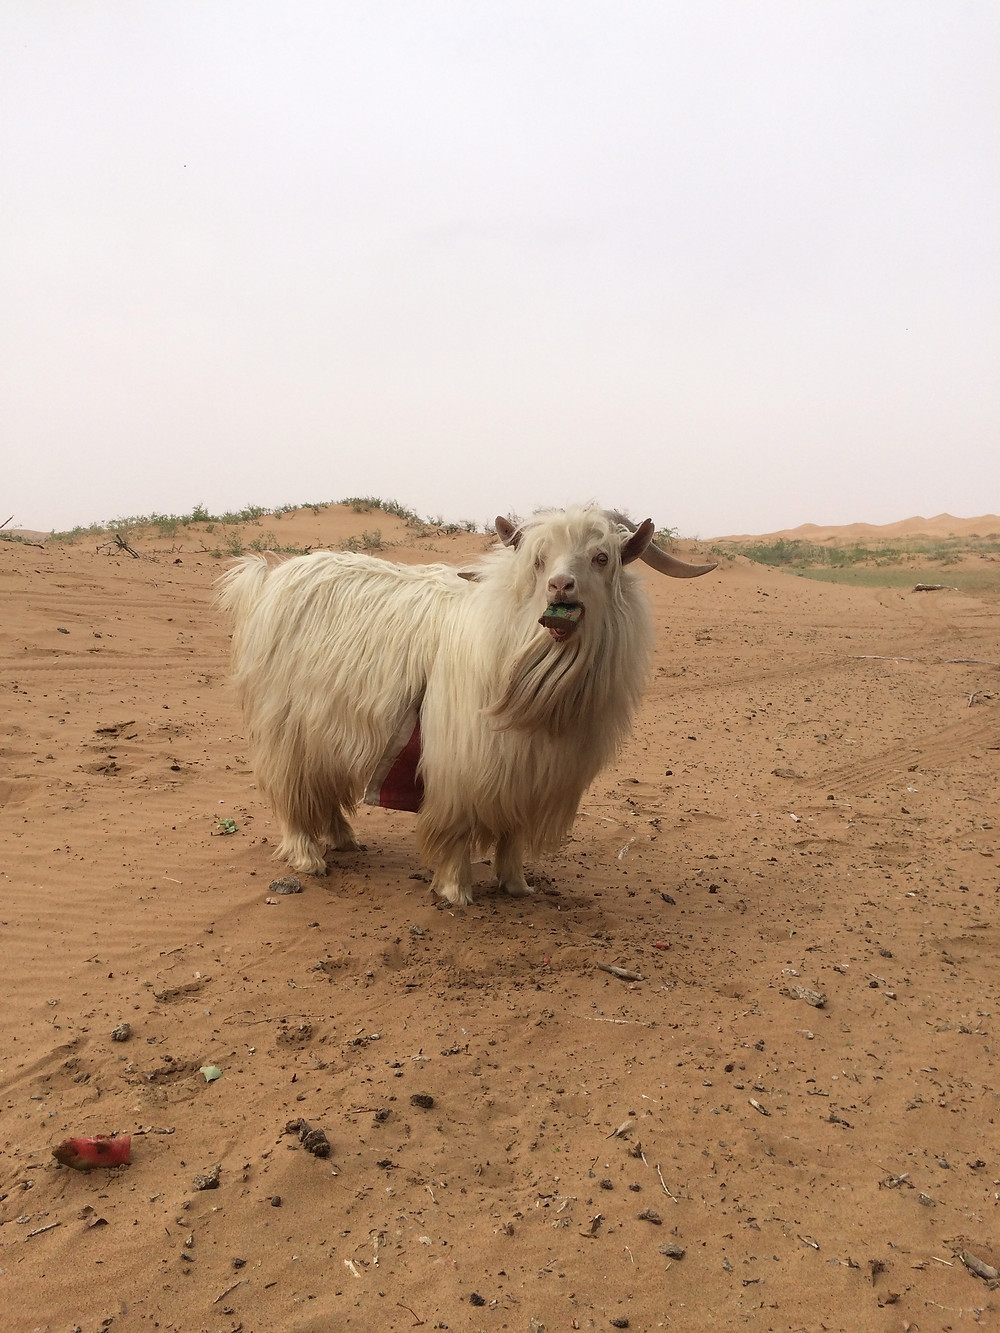 A goat belonging to a family who lives near an oasis in the Tengger Desert. Photo: Simina Mistreanu